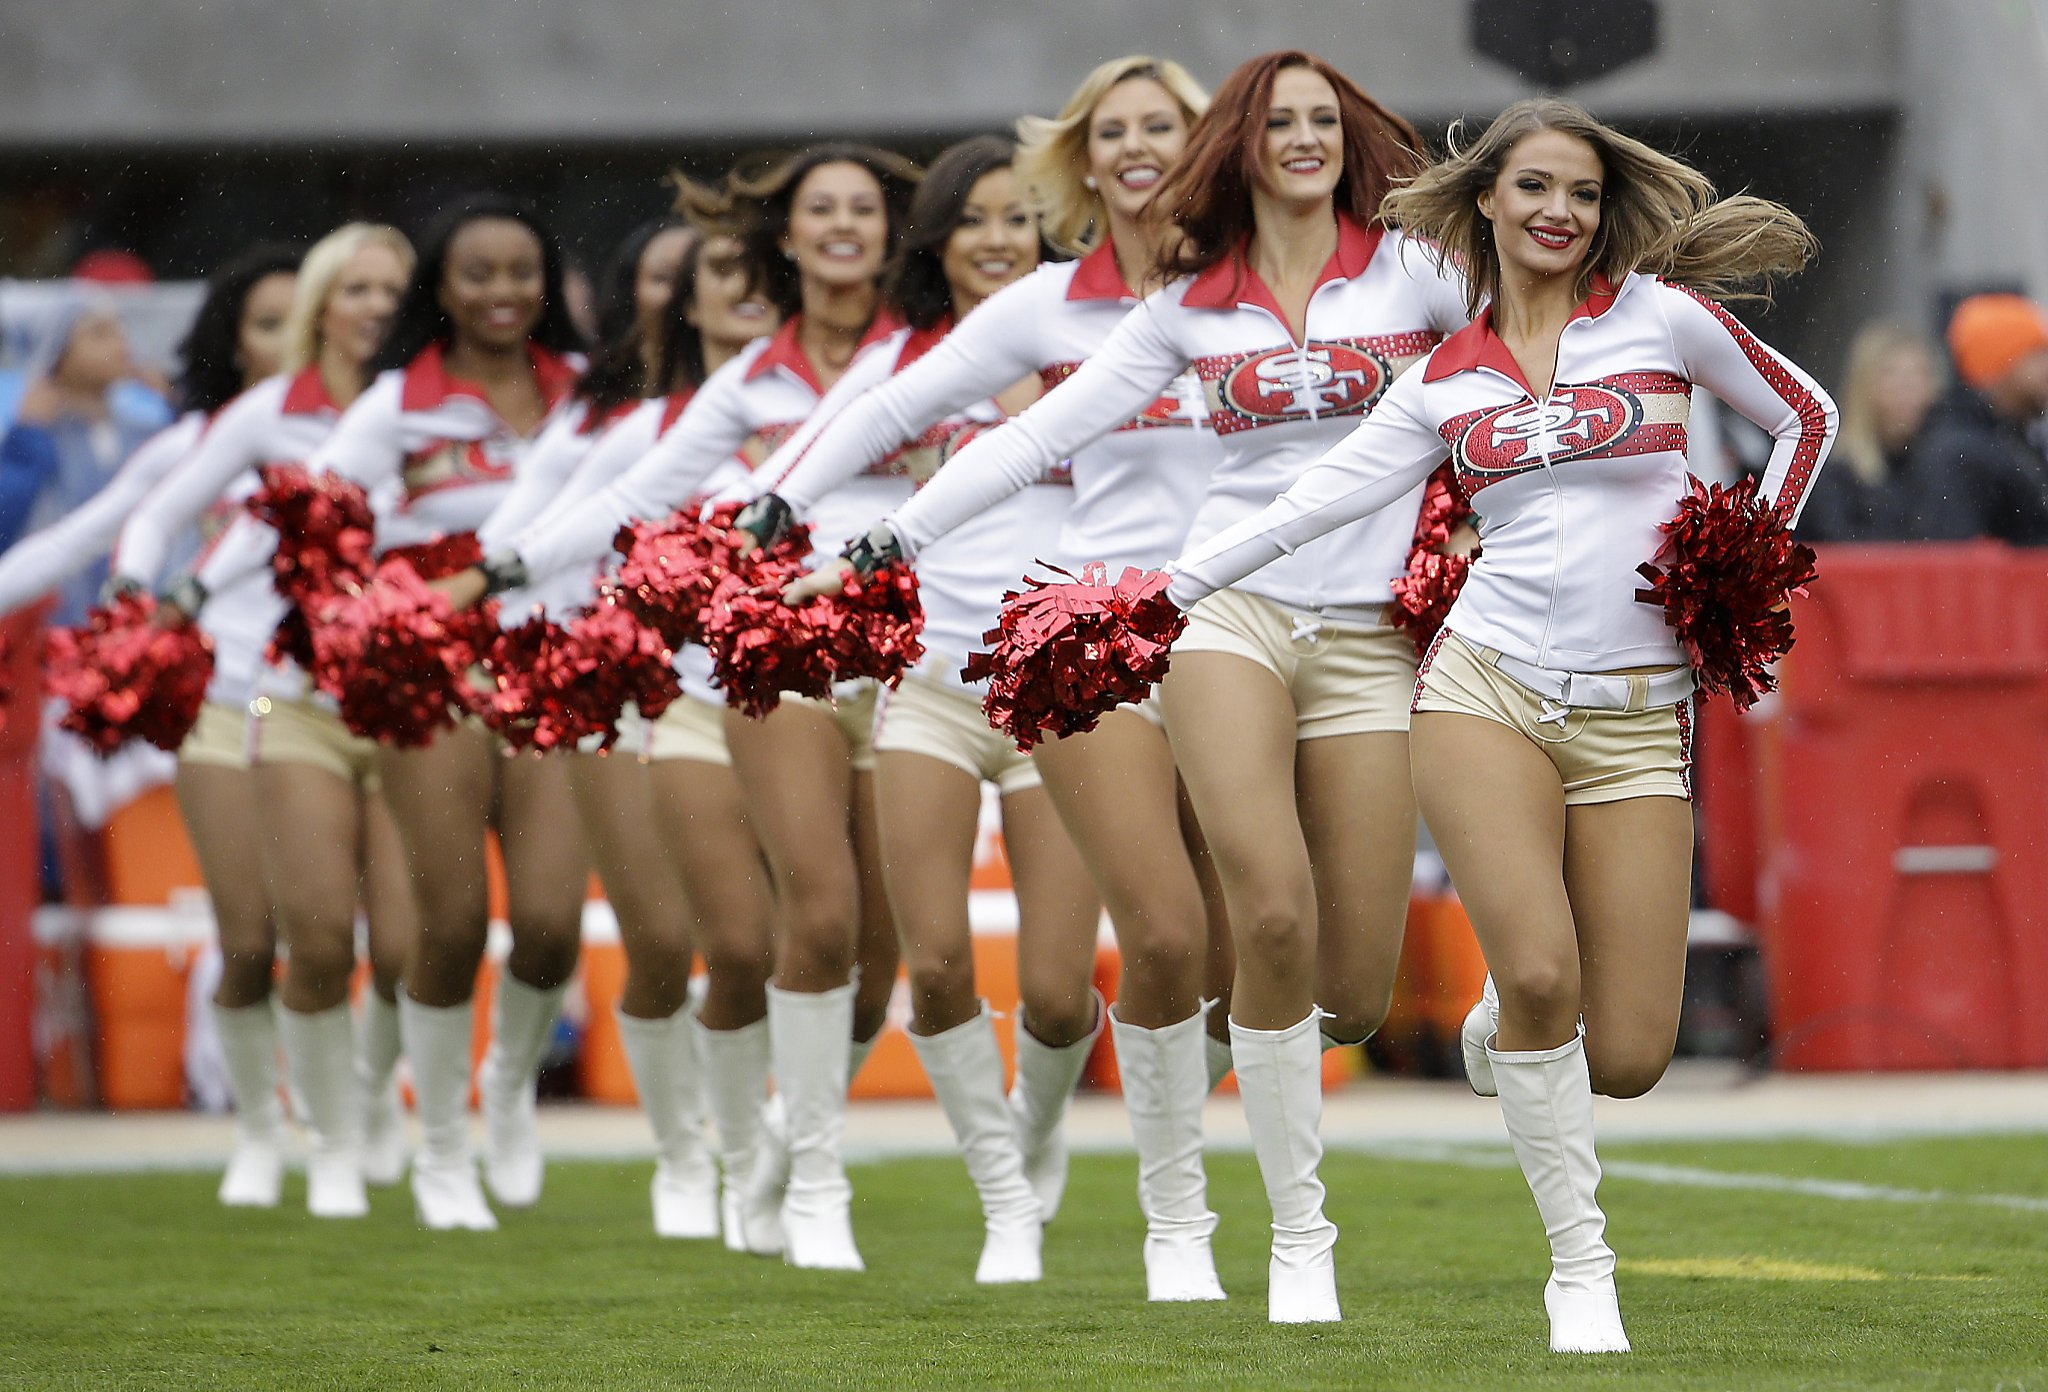 Judge tosses ex-49ers cheerleader's suit against NFL